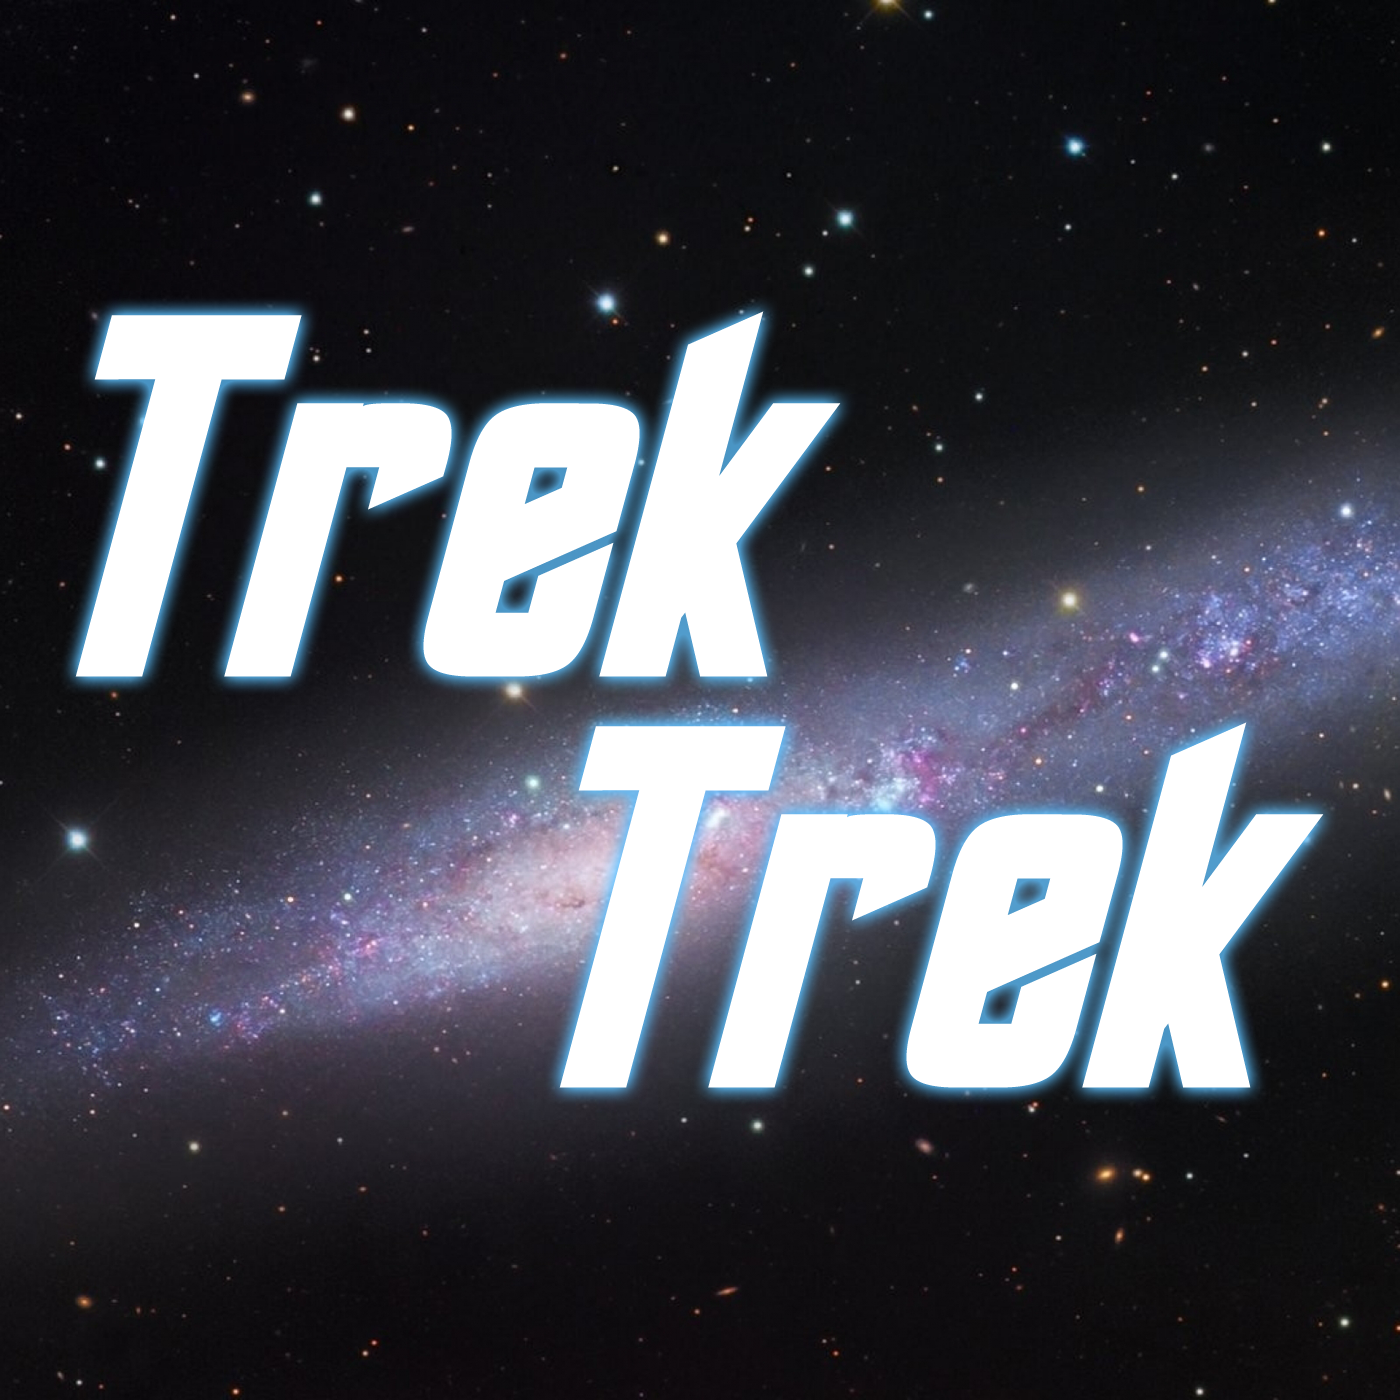 Trek Trek - A Star Trek Podcast